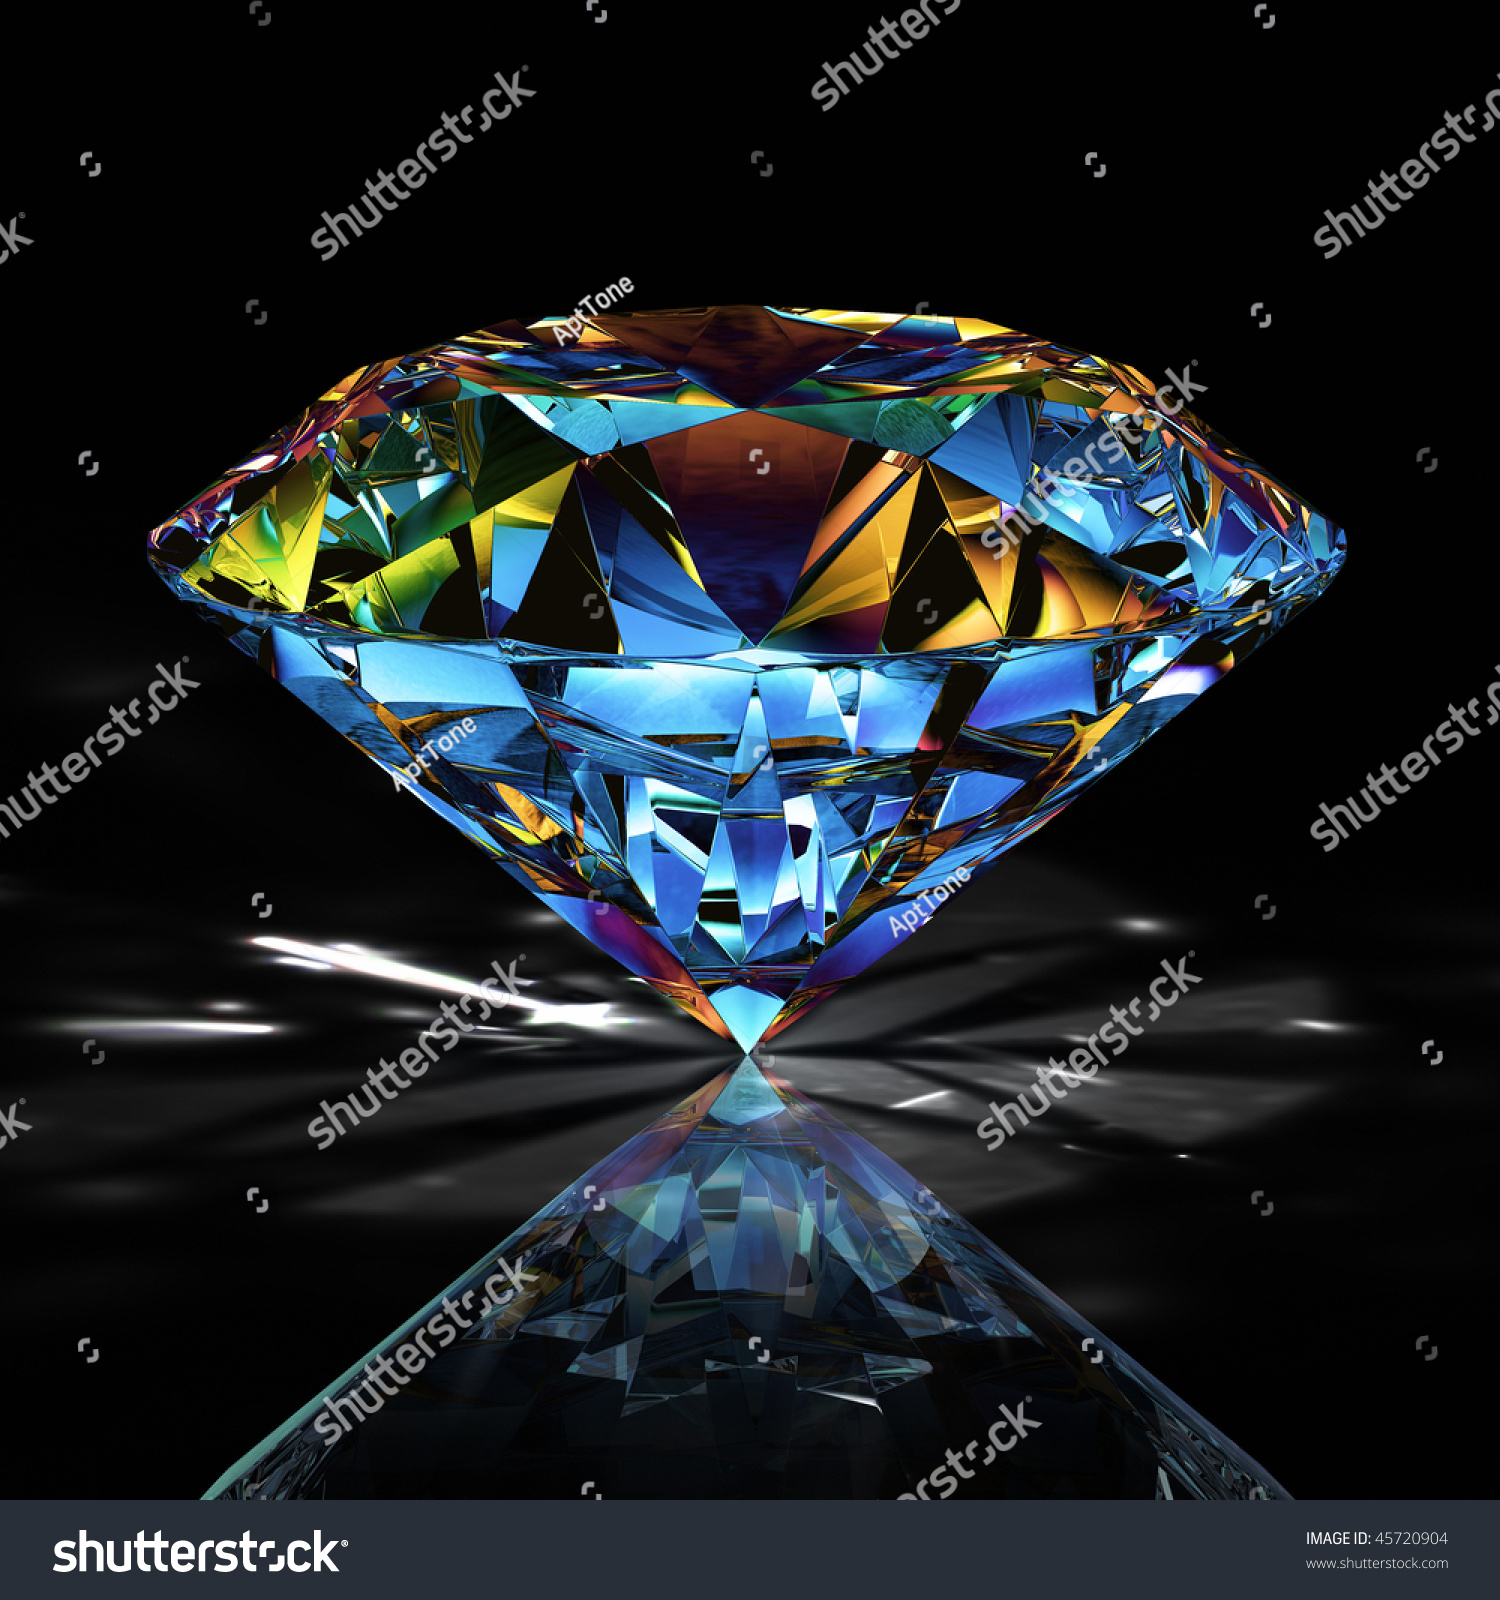 black a image dark sparkle reflections sparkling background beautiful reflective illustration diamond photo on with stock jewel